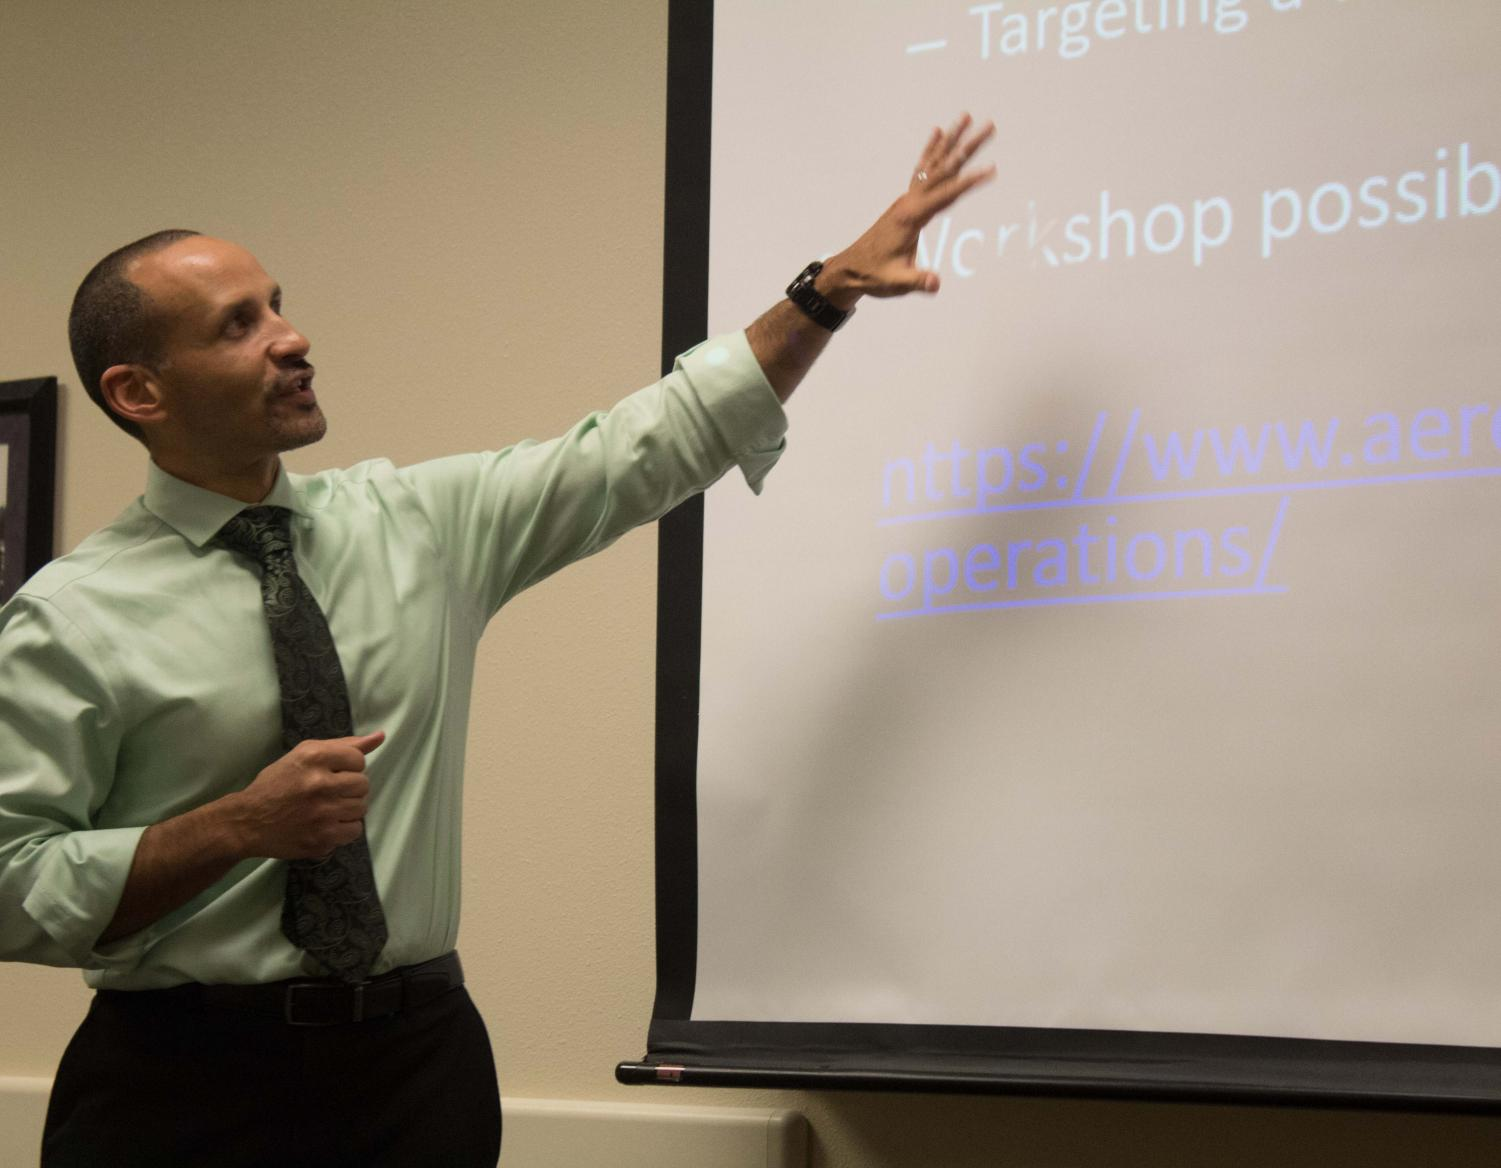 Tomas Gonzolaz-Torres is a former NASA employee and current Iowa State University professor and assistant director for the ISGC (Iowa Space Grant Consortium). He spoke on Nov. 28 about NASA internship opportunities.